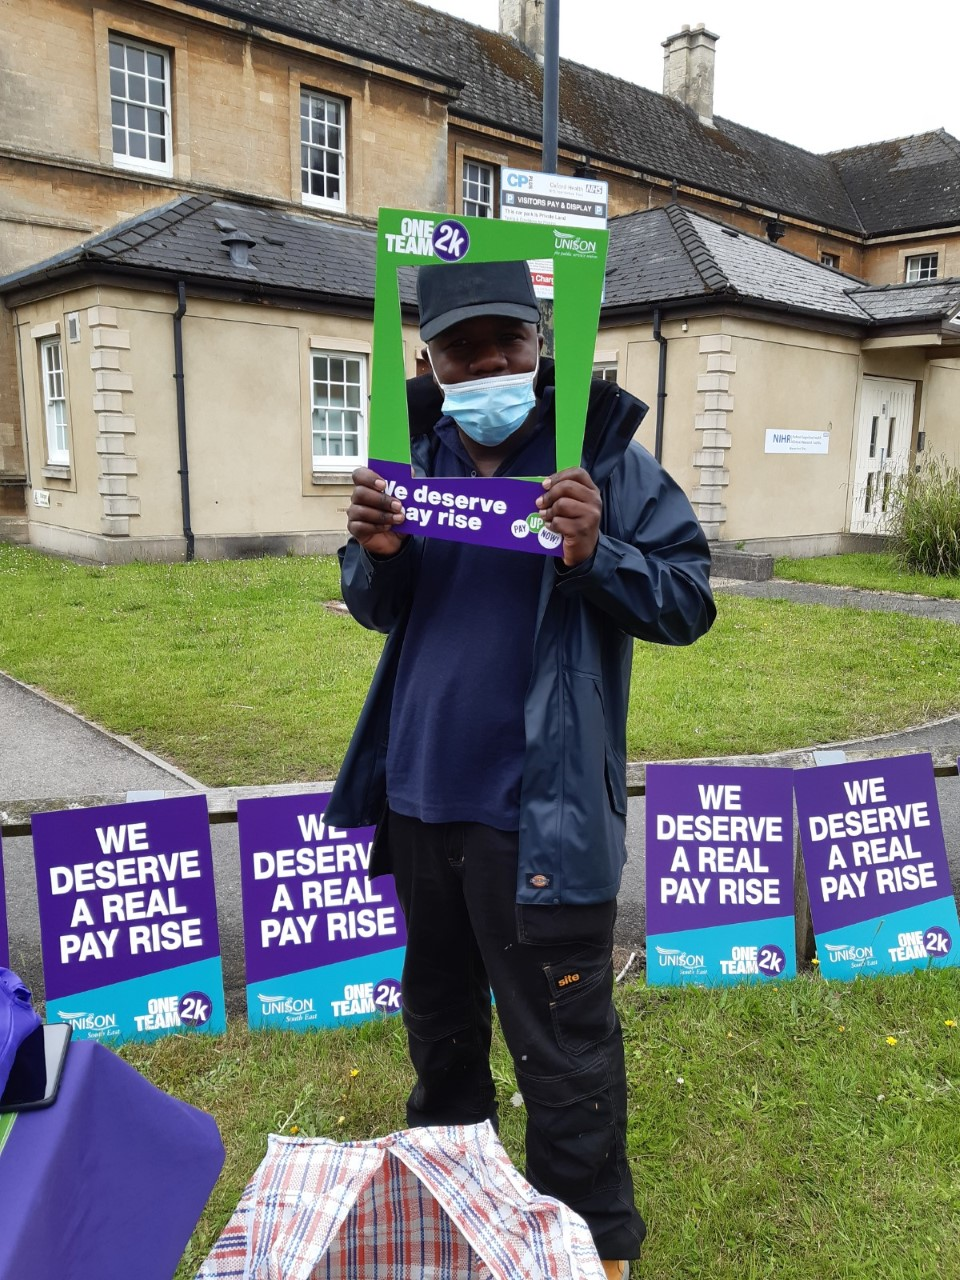 image of a member of NHS staff standing outside a hopsital building. They are holding a banner that frames their face, that says 'we deserve a pay rise' In the background there are more banners that say 'We deserve a real pay rise'